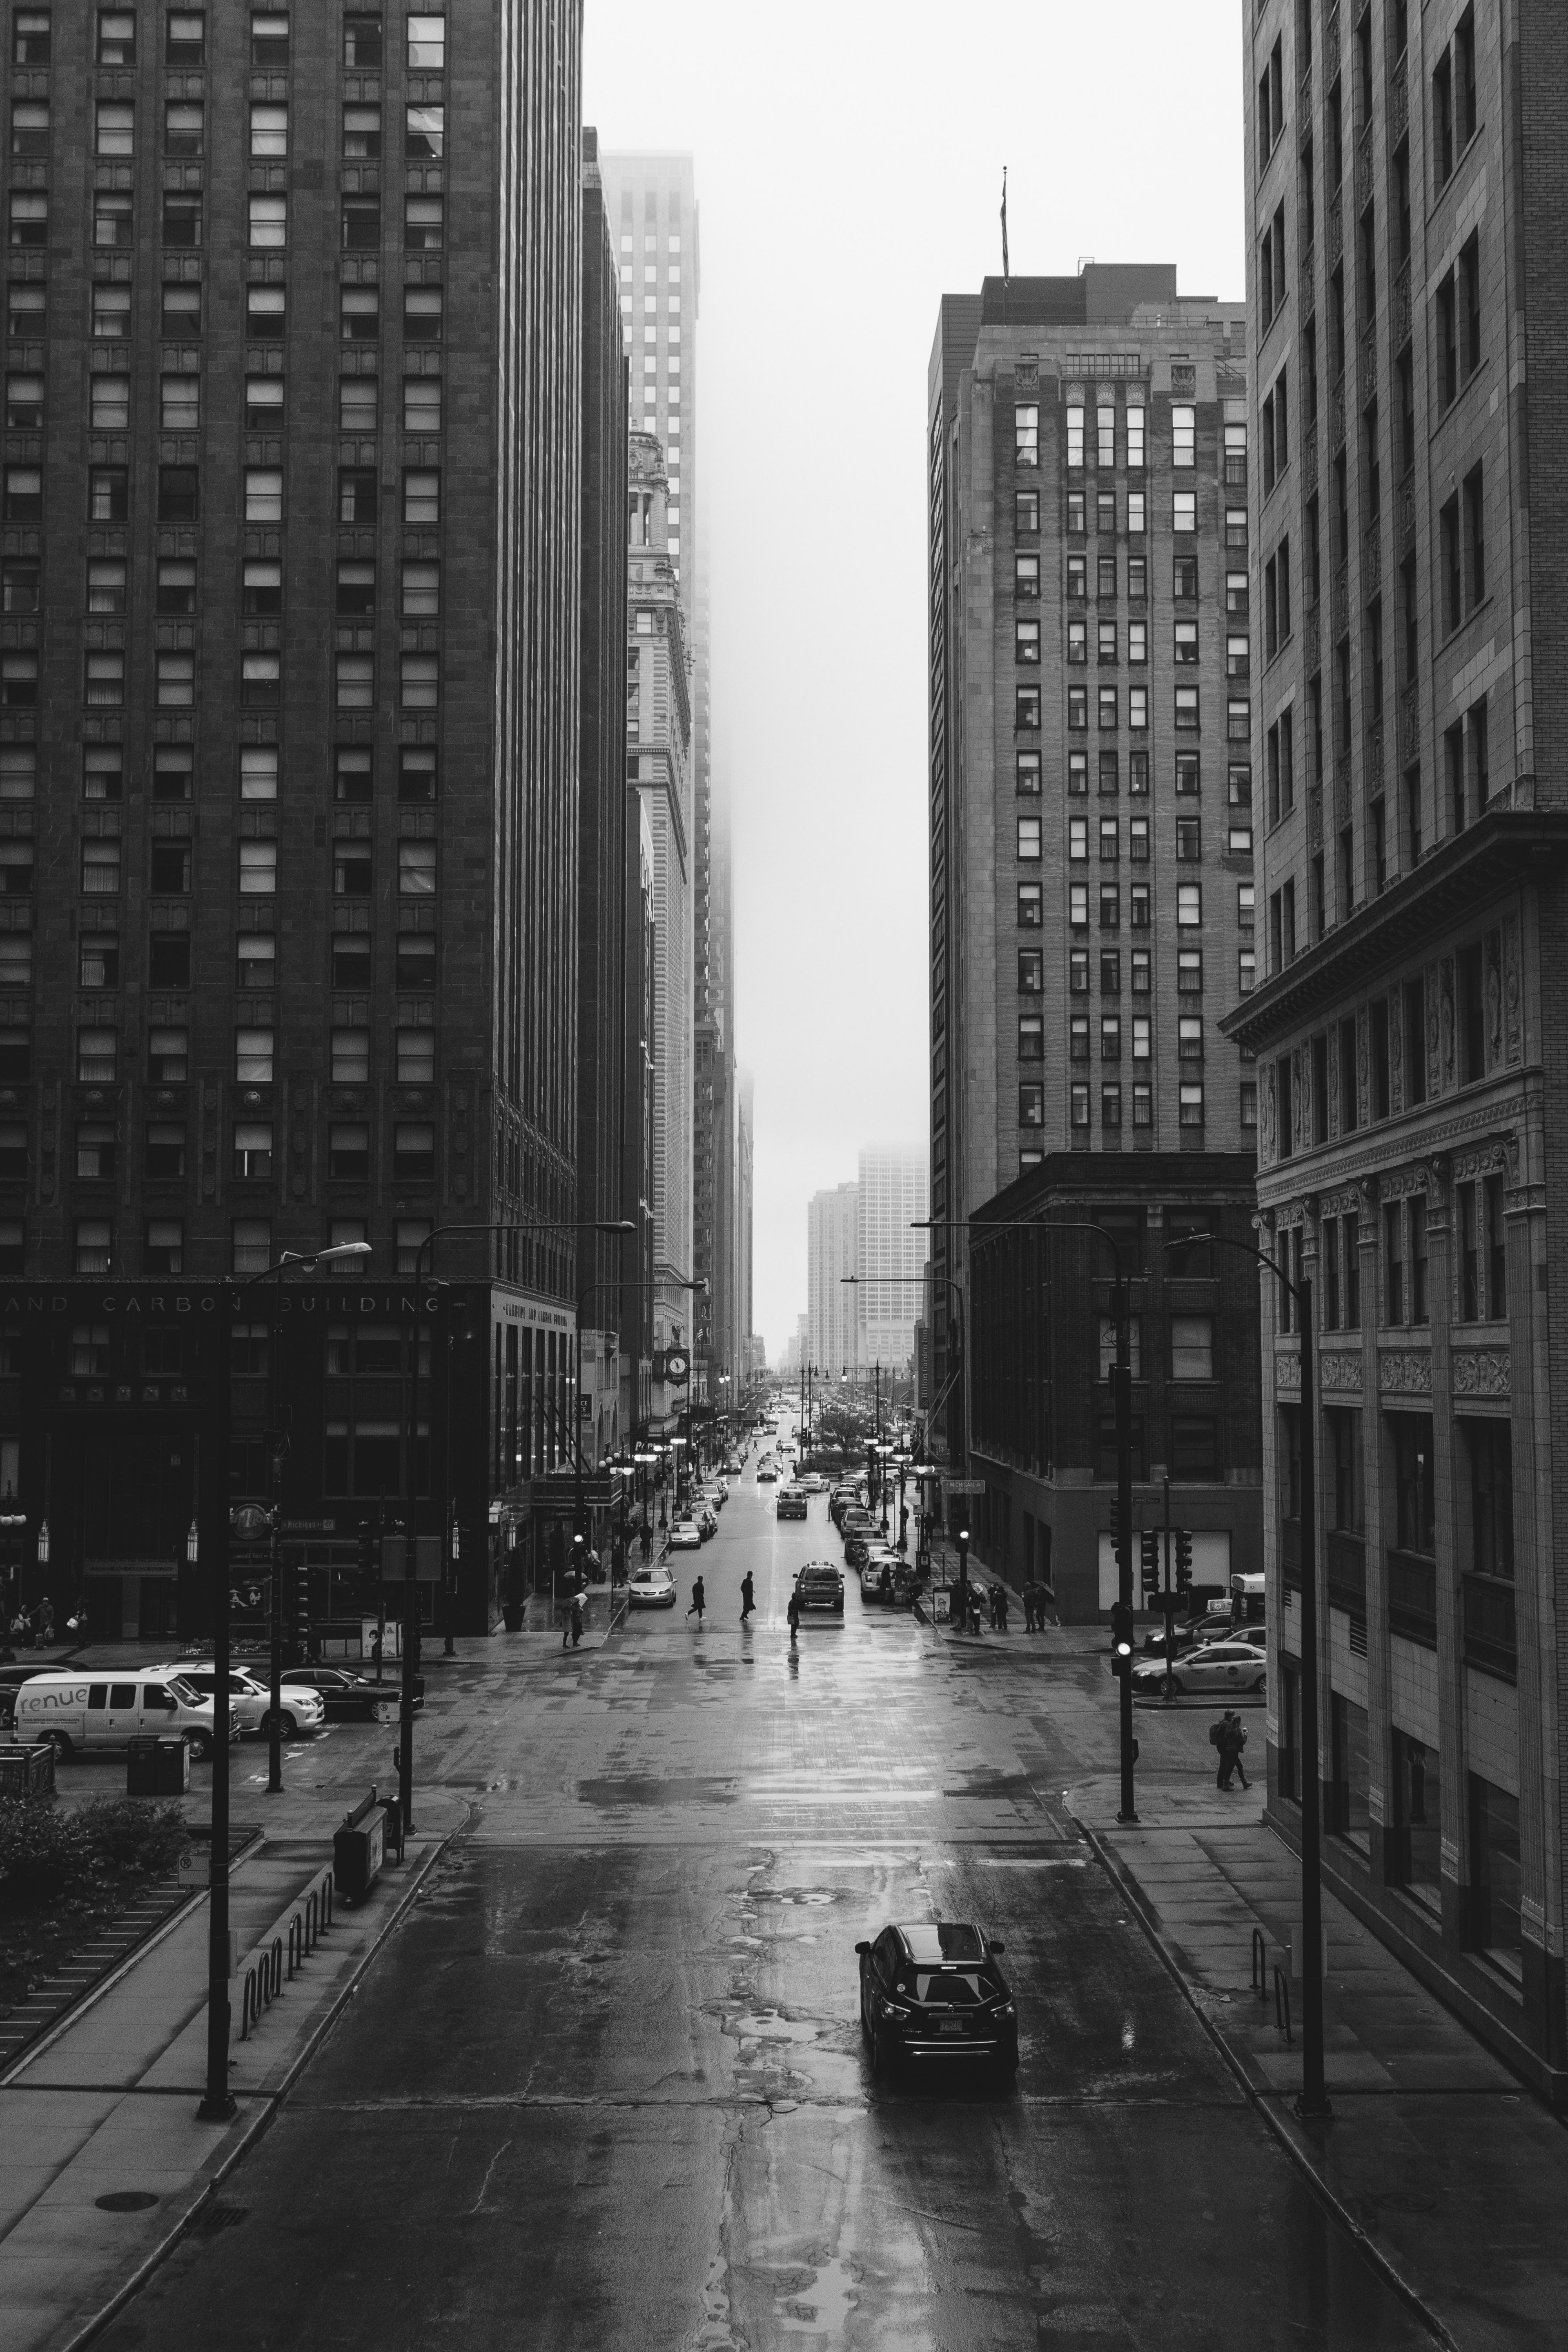 A Black And White Shot Of The Streets Of Chicago On A Rainy